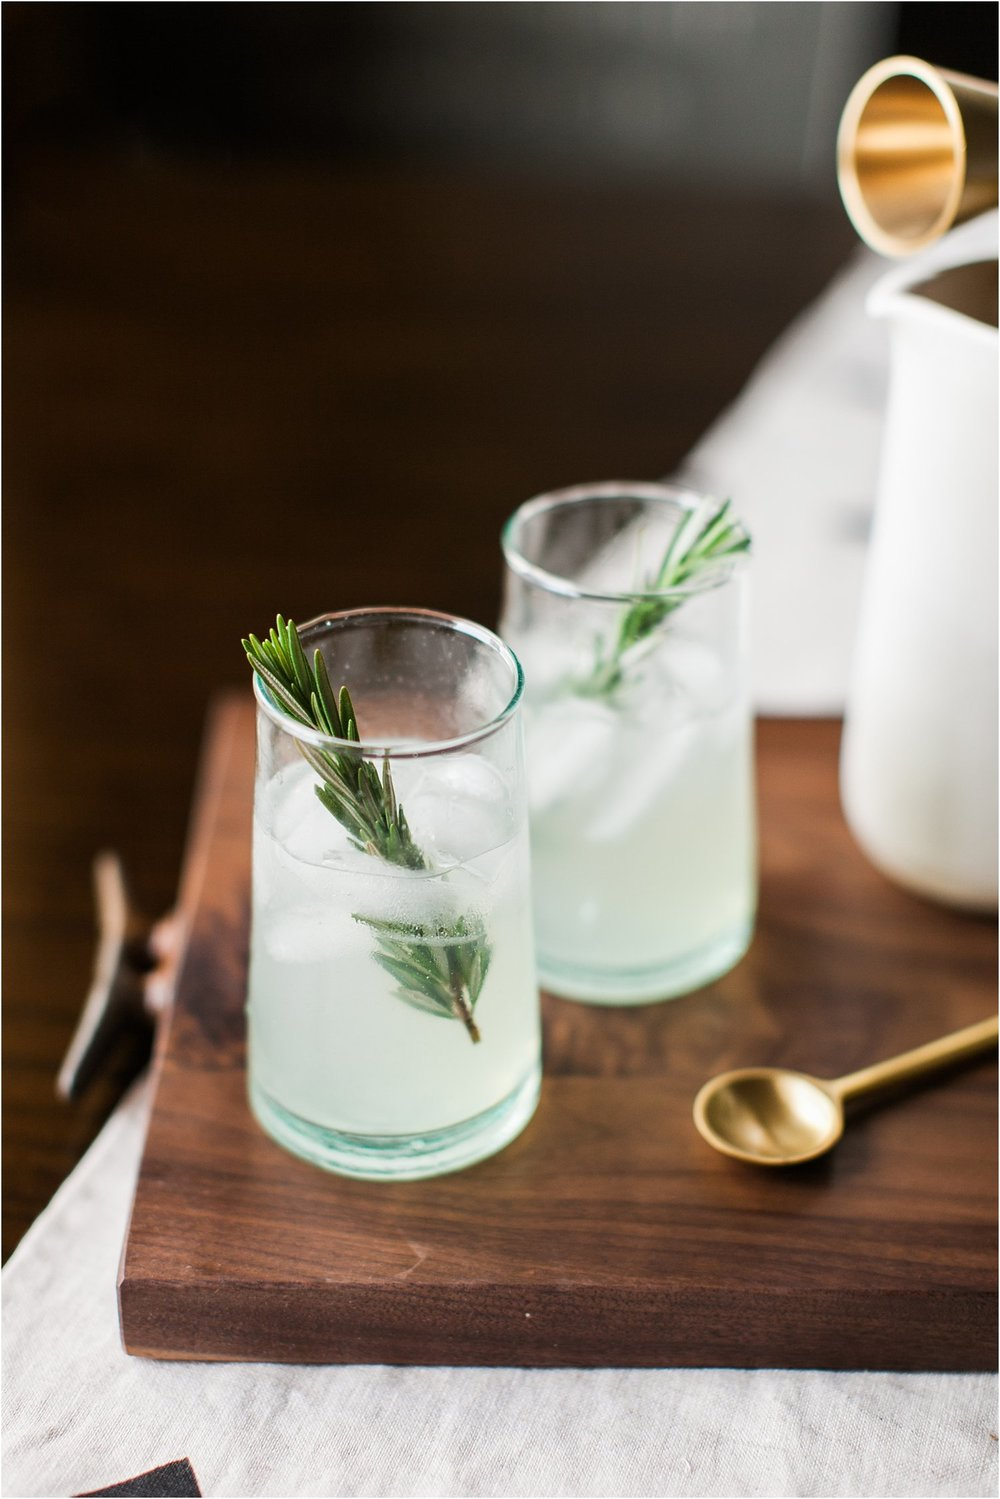 Rosemary Simple Syrup Recipe | Bar Essentials Every Cocktail Enthusiast Should Have | Feast & Dwell